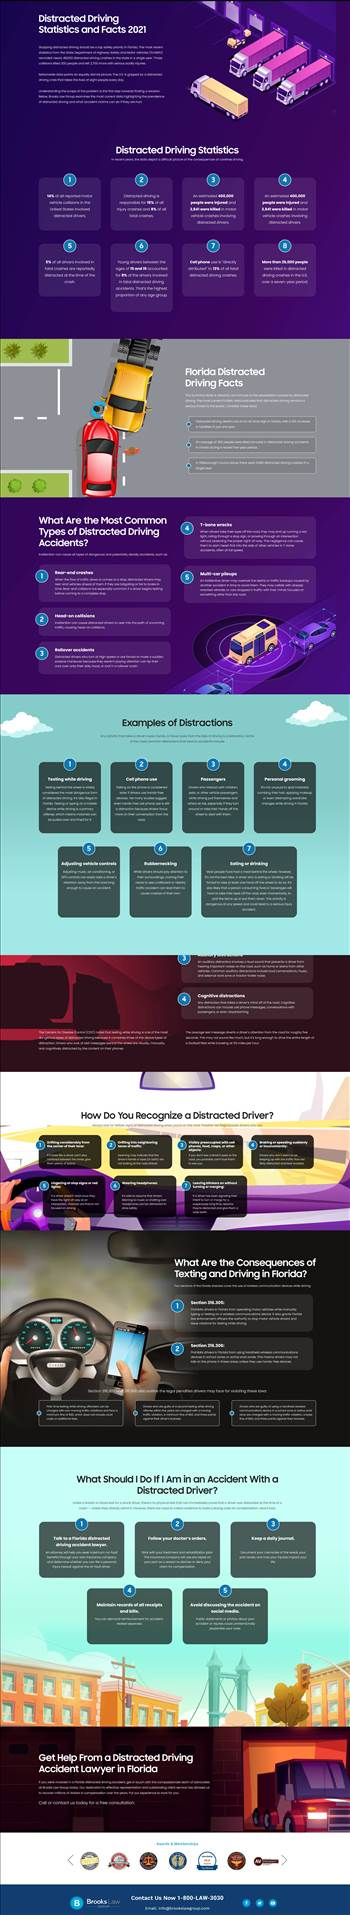 Florida Distracted Driving Statistics and Facts 2021 by brookslawgroup